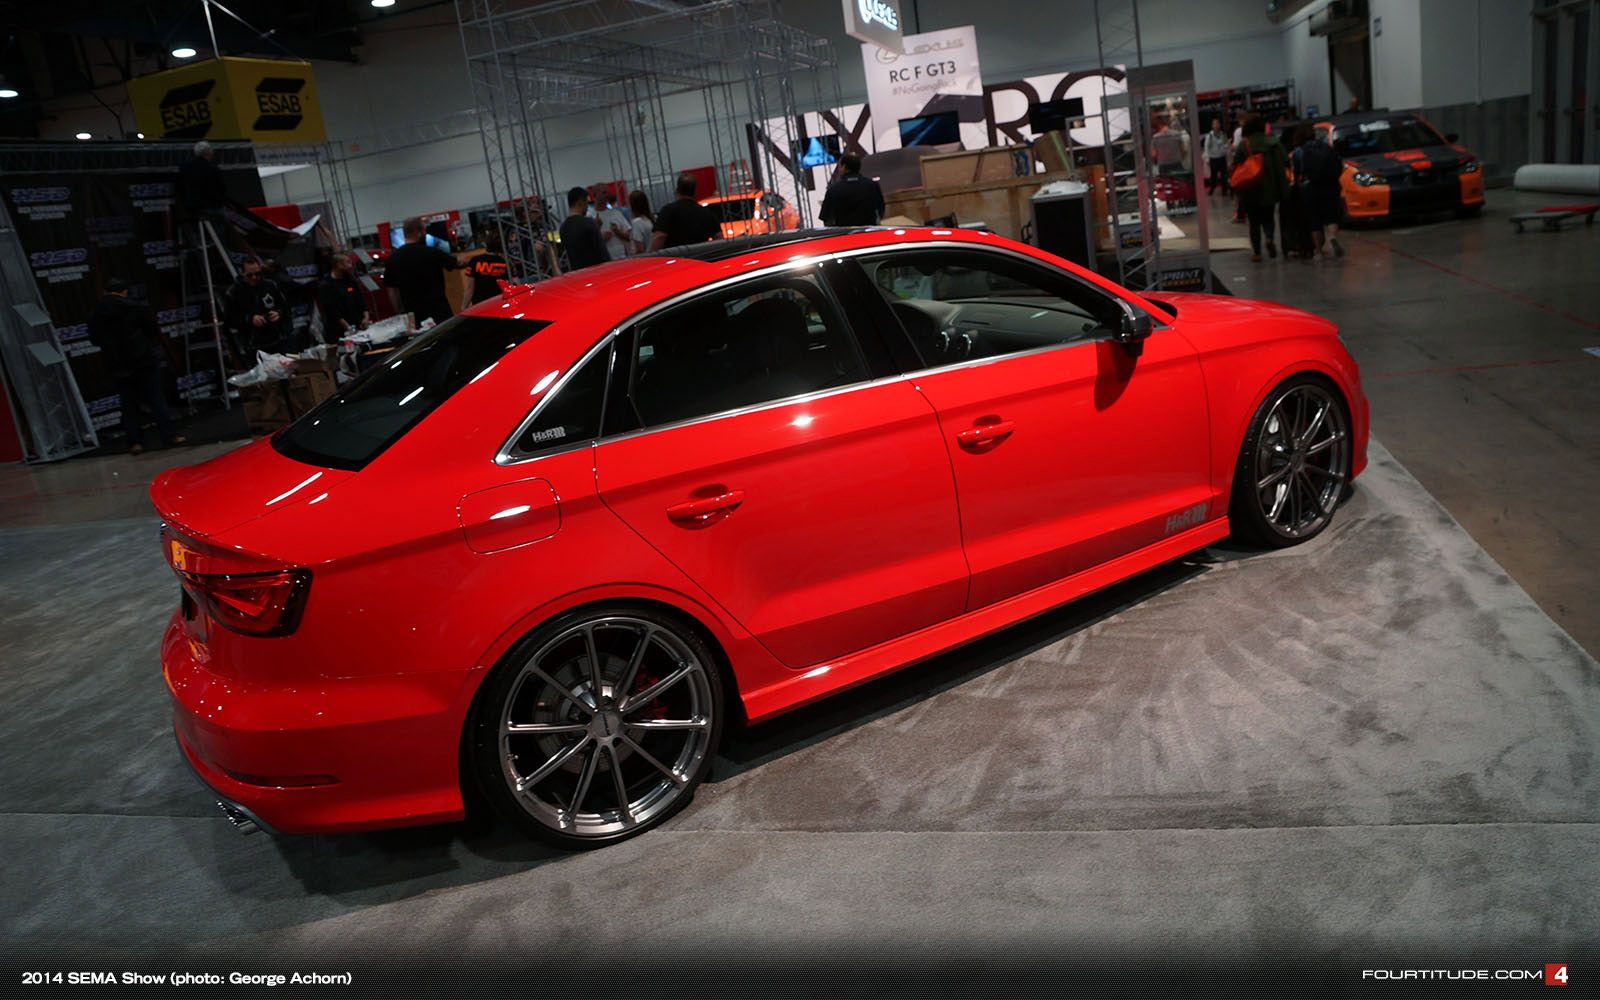 10 fabulous audi s3 sportback inside view images audi pinterest audi and cars